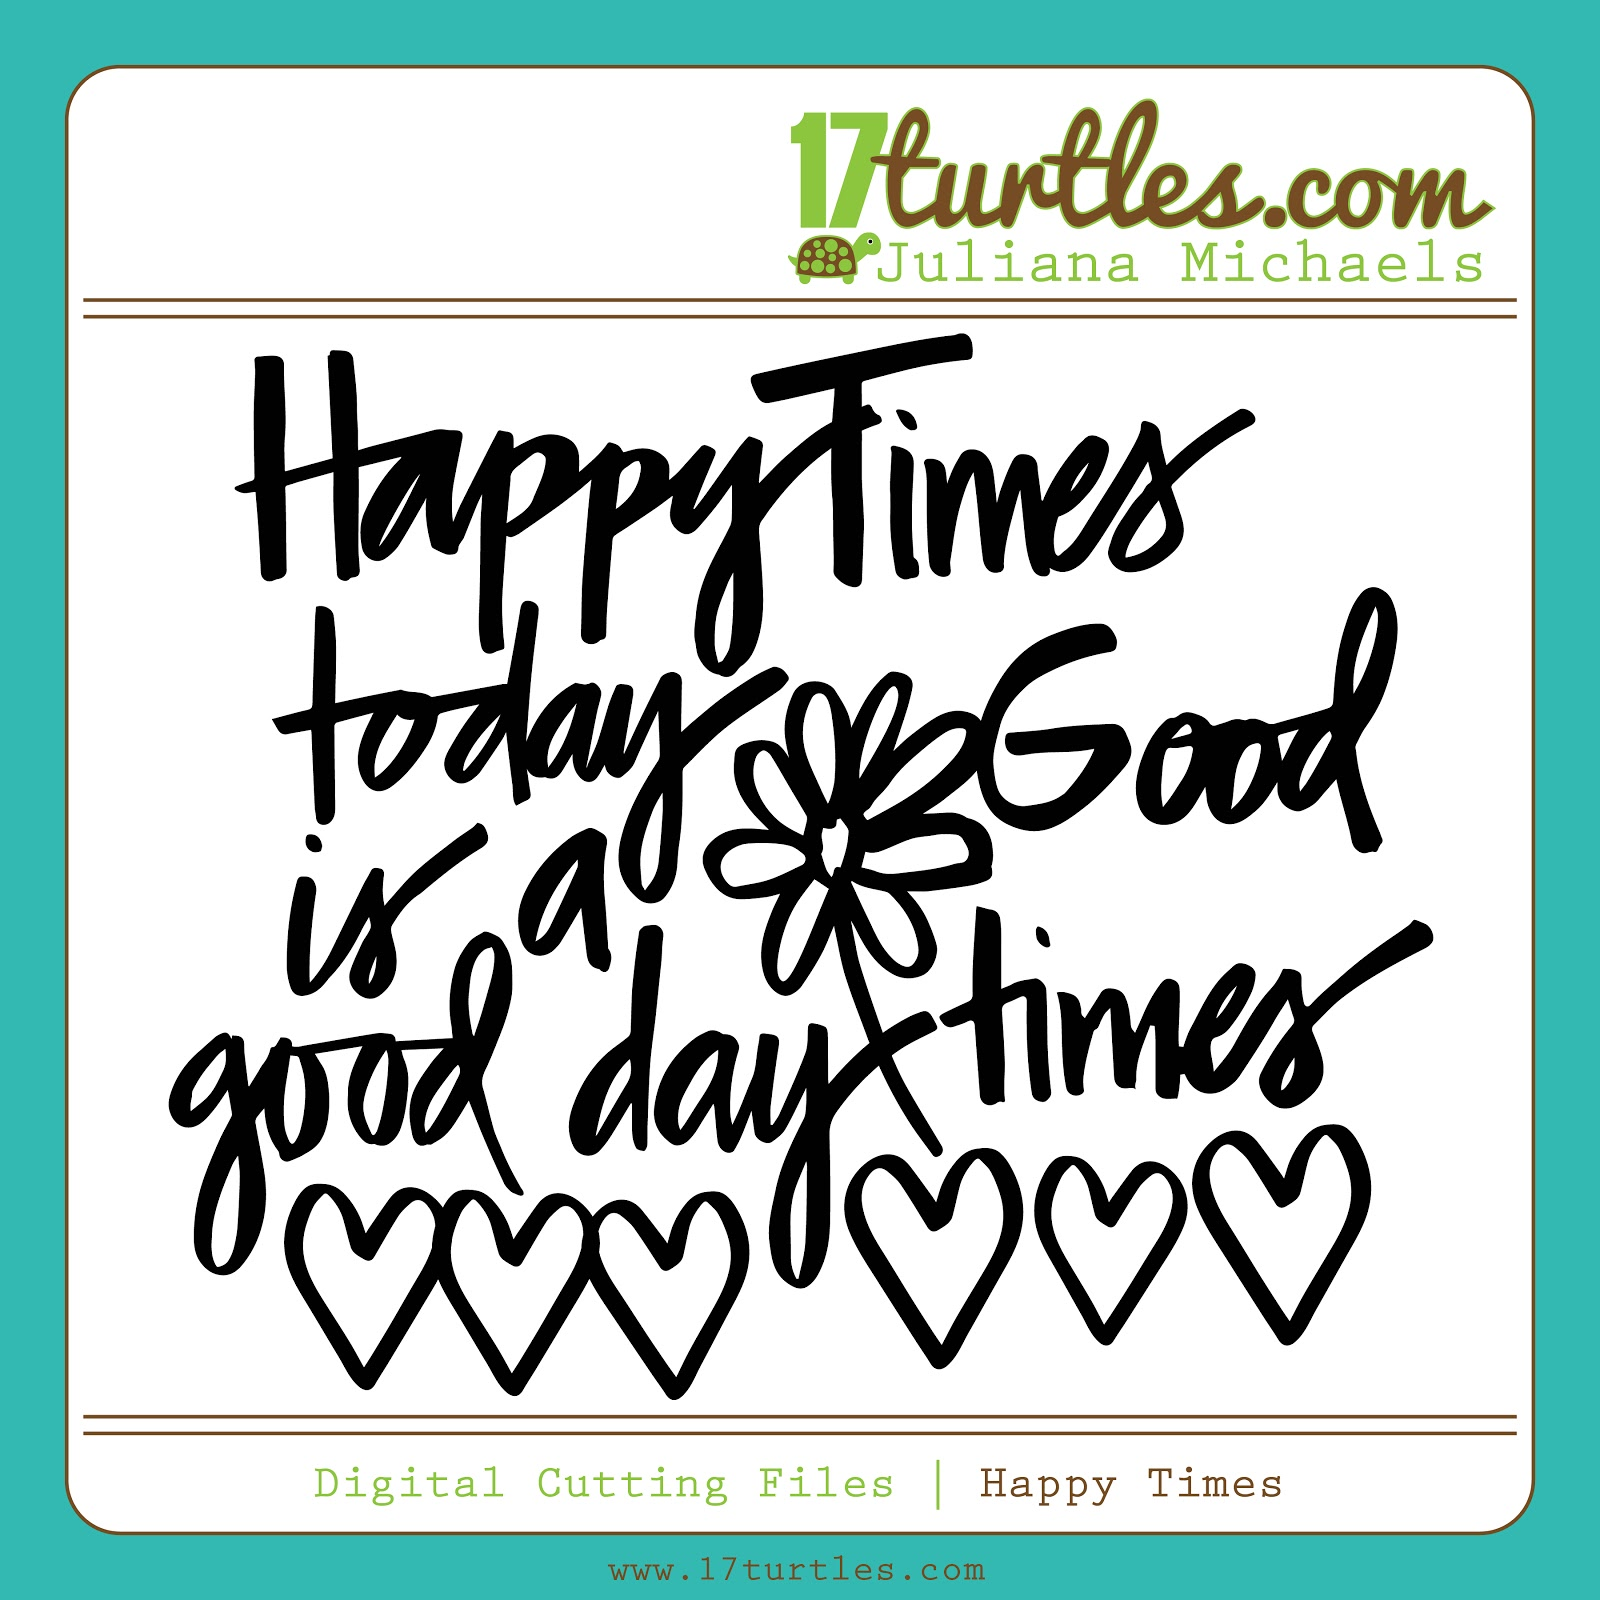 Happy Times Free Digital Cutting File by Juliana Michaels 17turtles.com